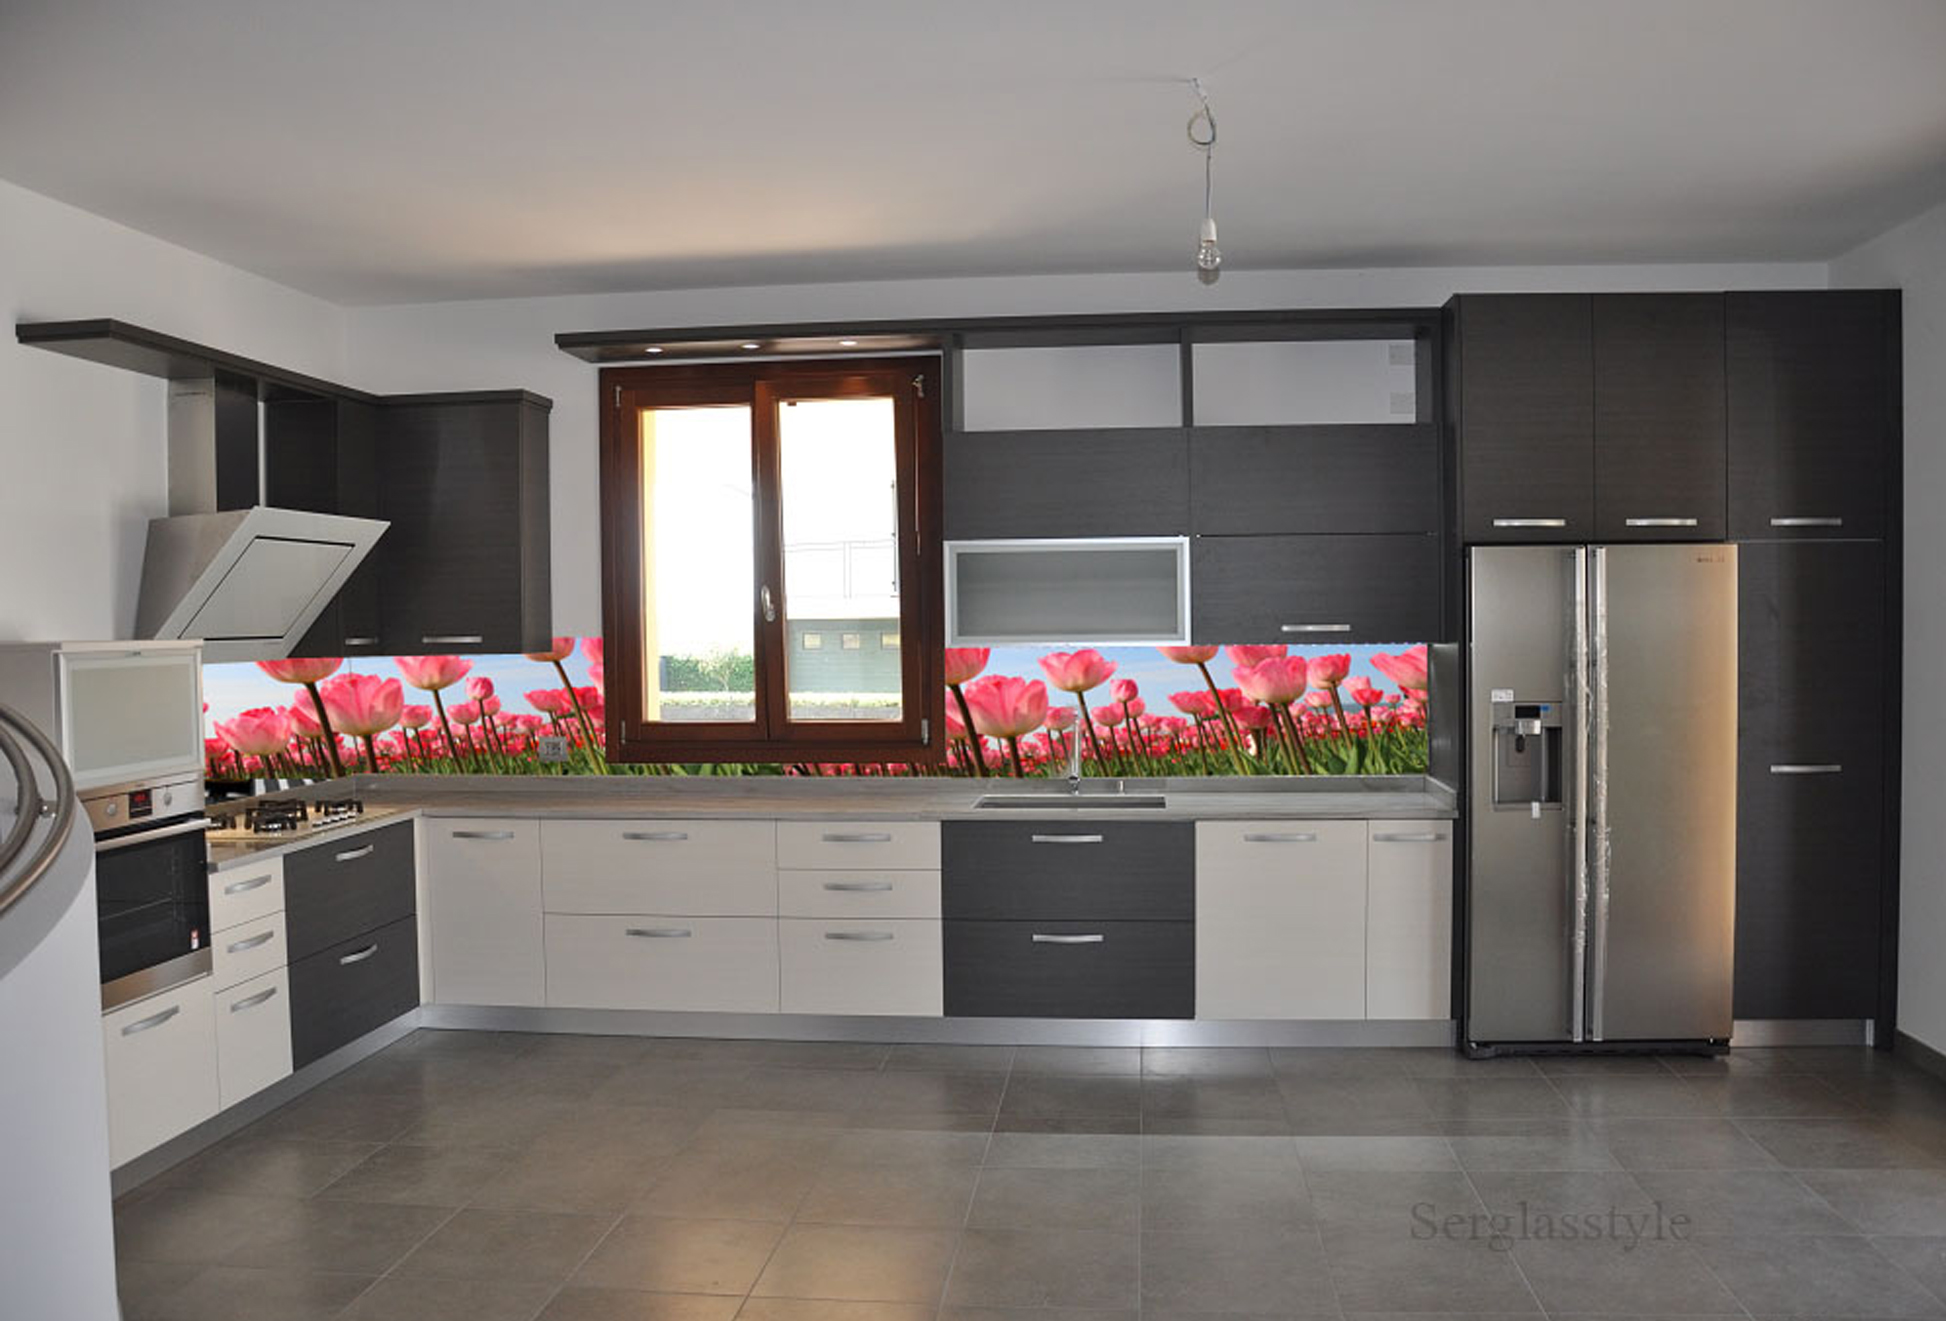 Flower with cucine ad angolo con finestra - Cucina ad angolo con finestra ...